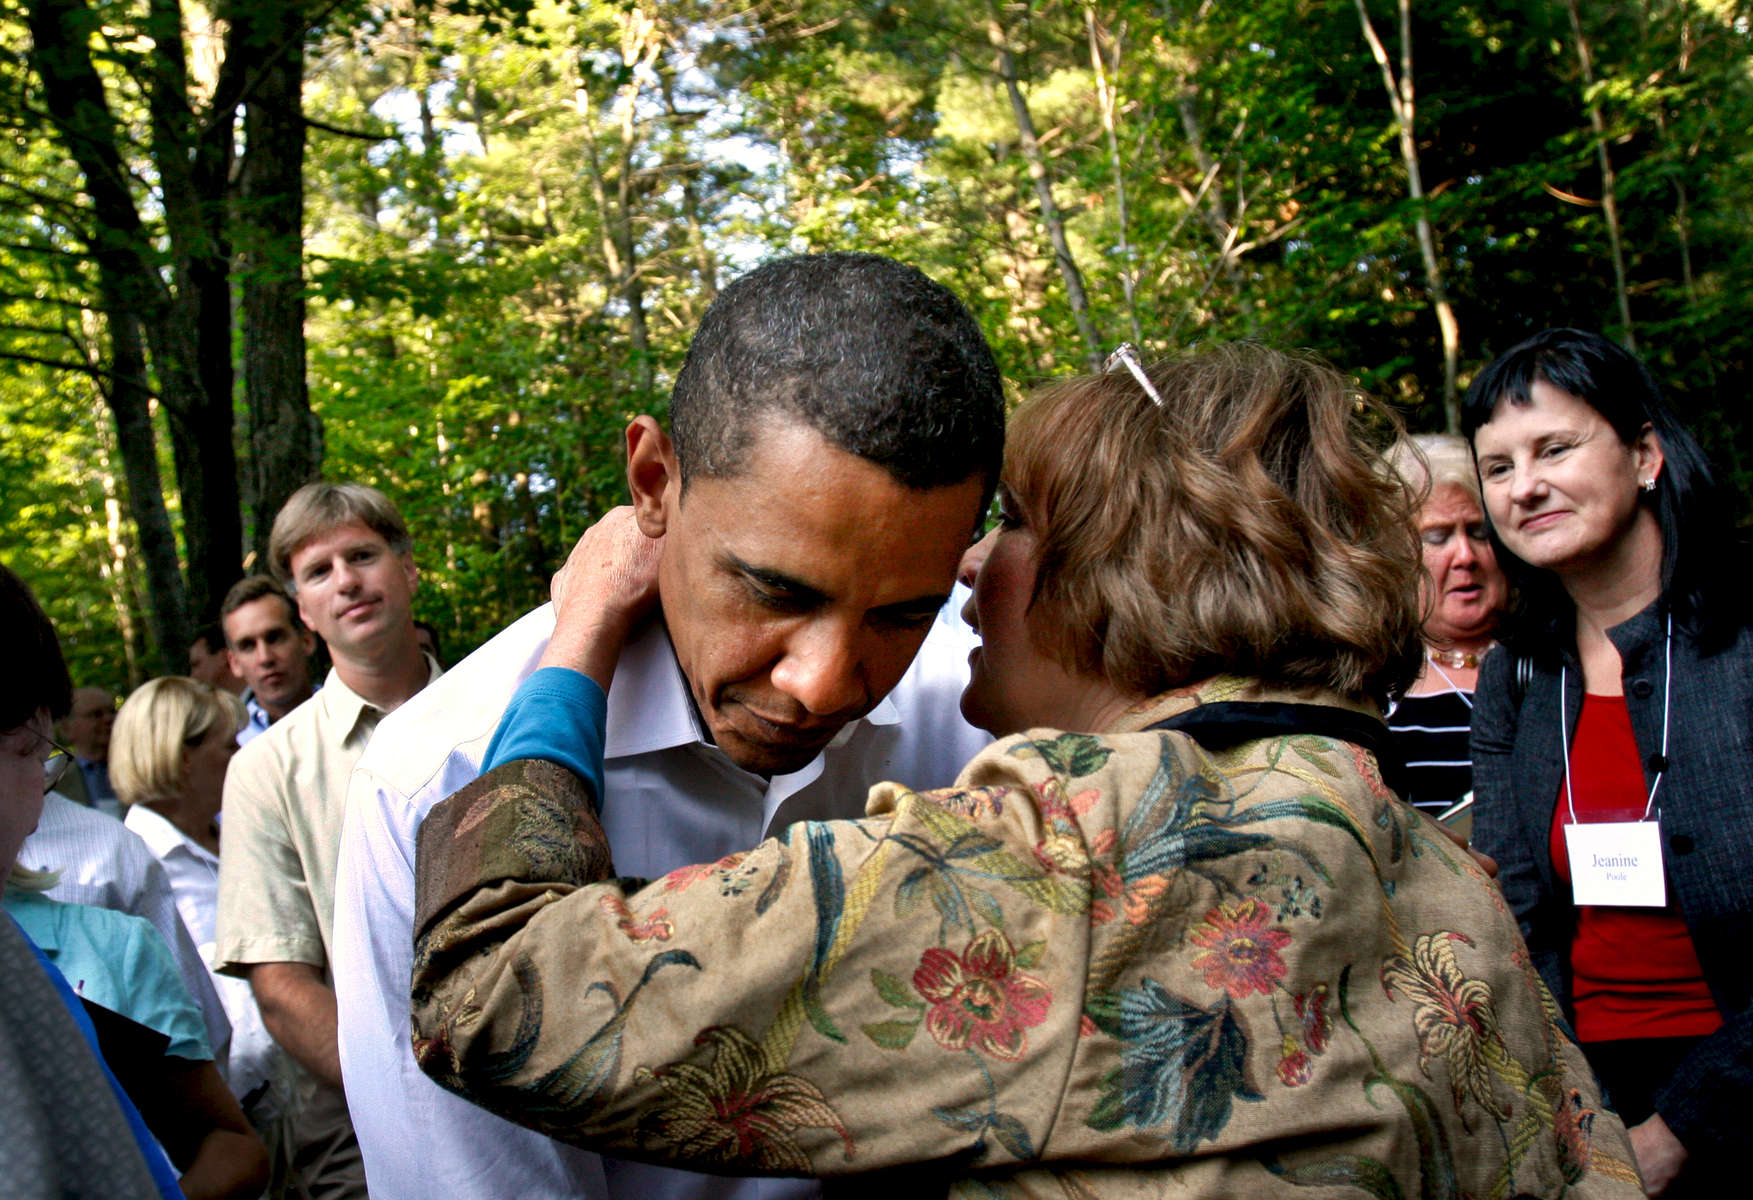 Senator Barack Obama campaigns in Laconia and at Gary and Meg Hirshberg's house party in Concord, New Hampshire on July 2, 2007.